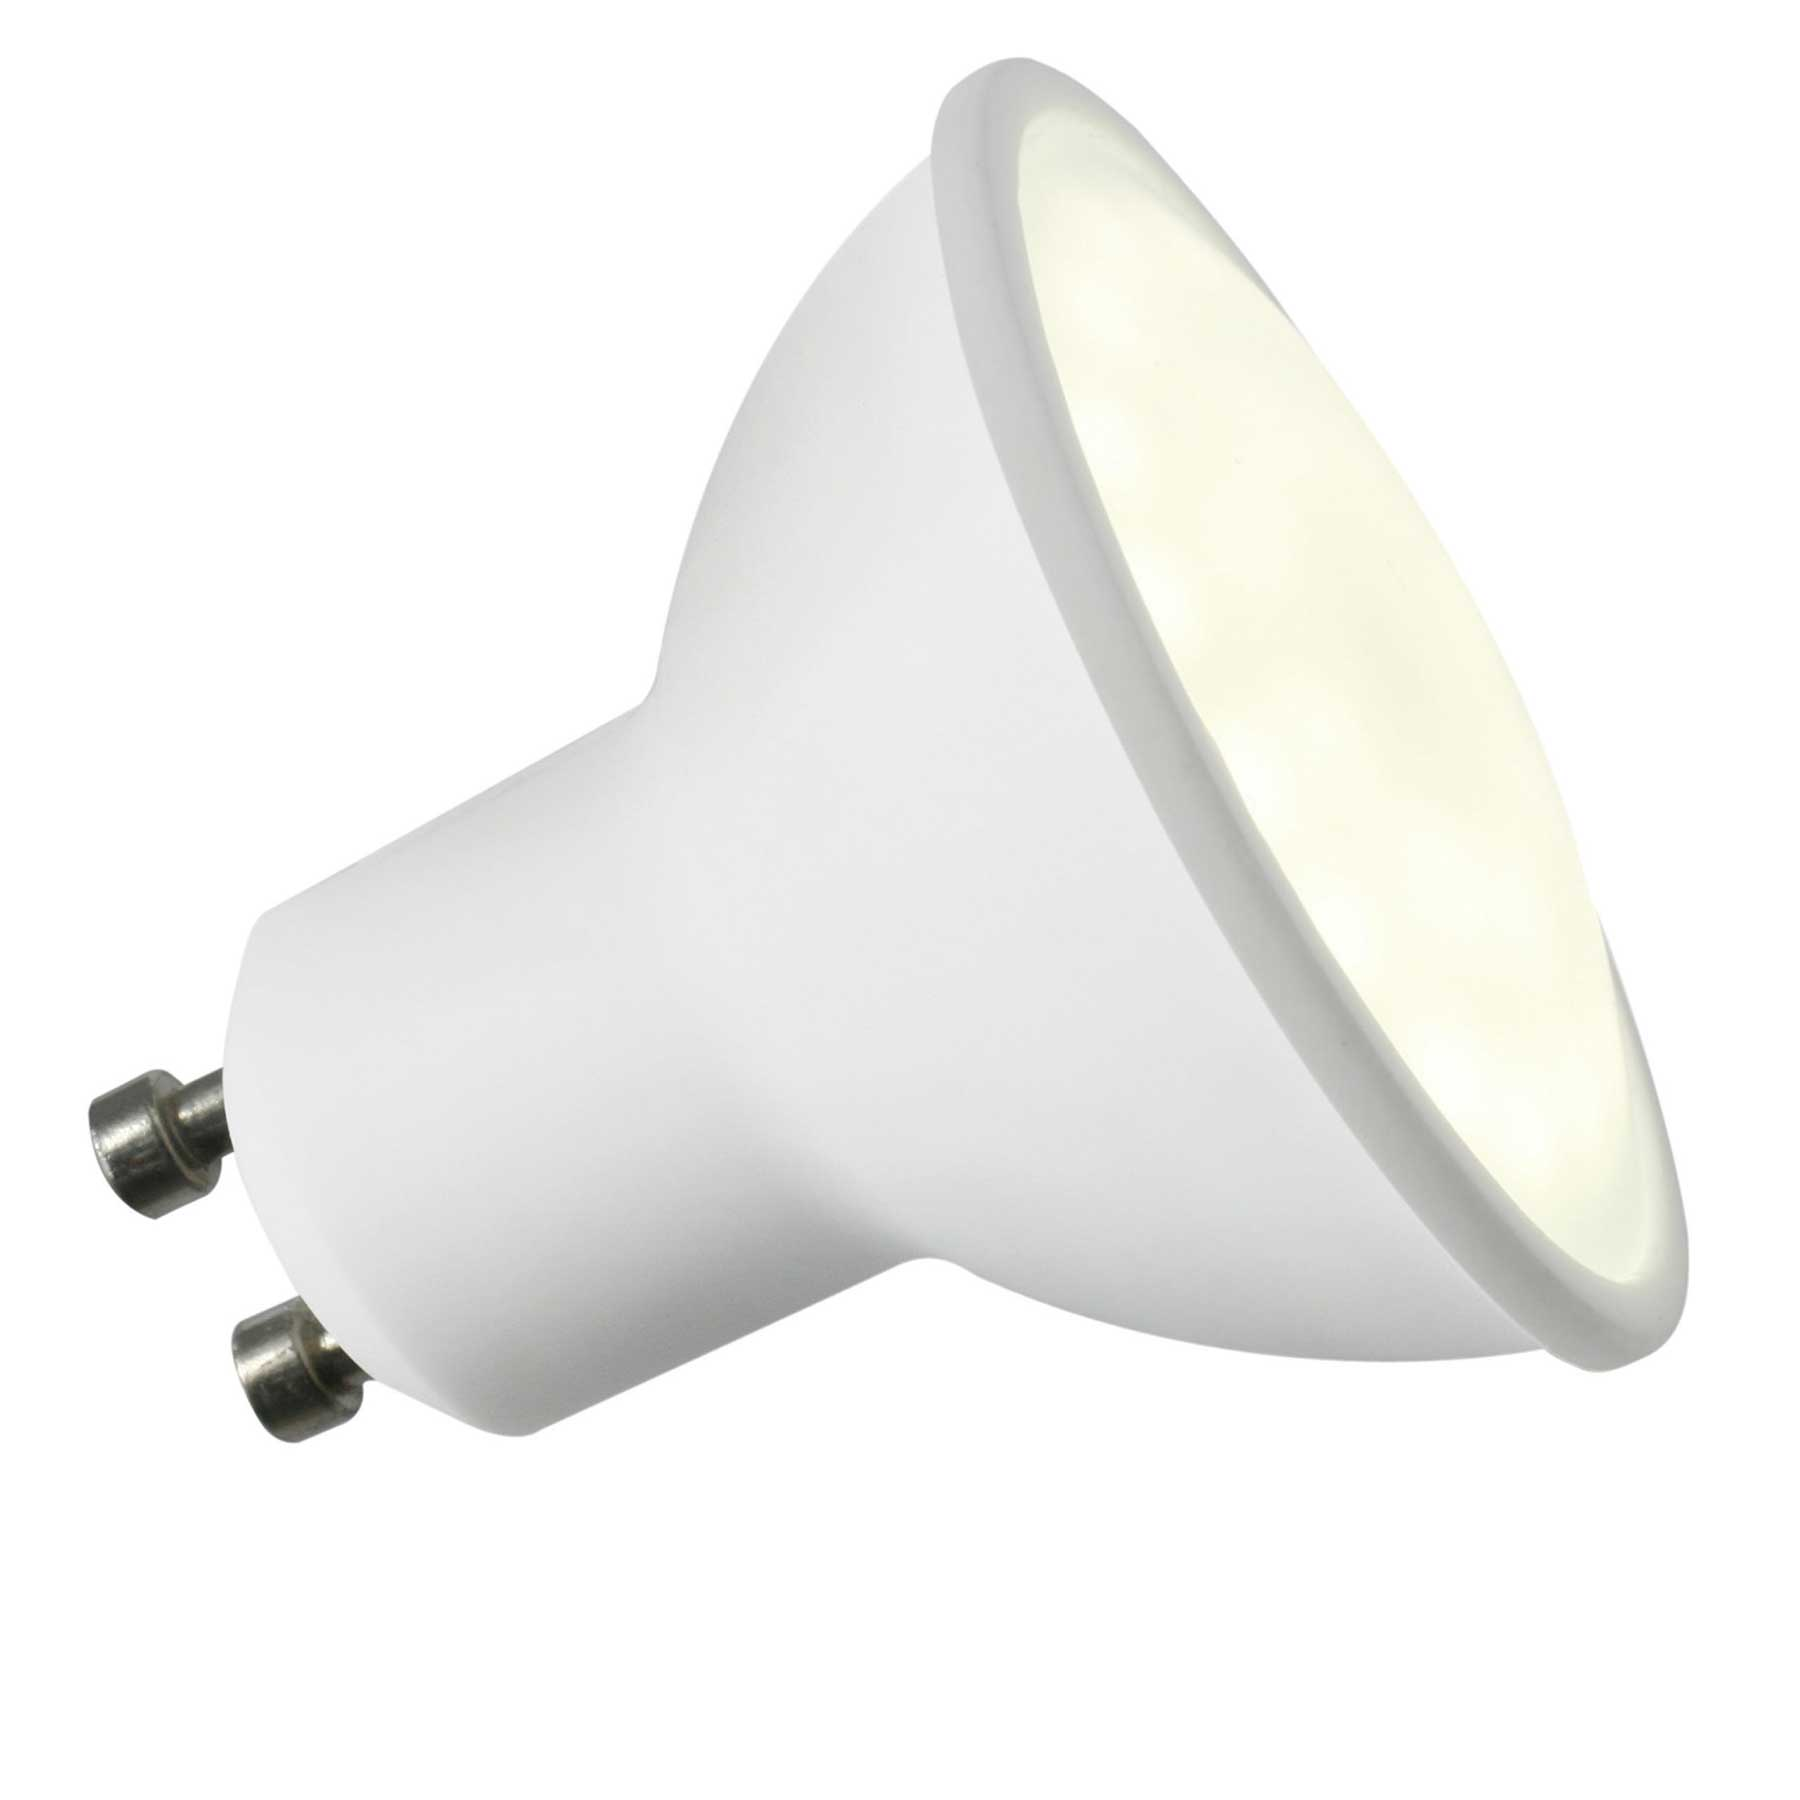 Led Gu10 5w Knightsbridge Gu10 Led Light Bulbs